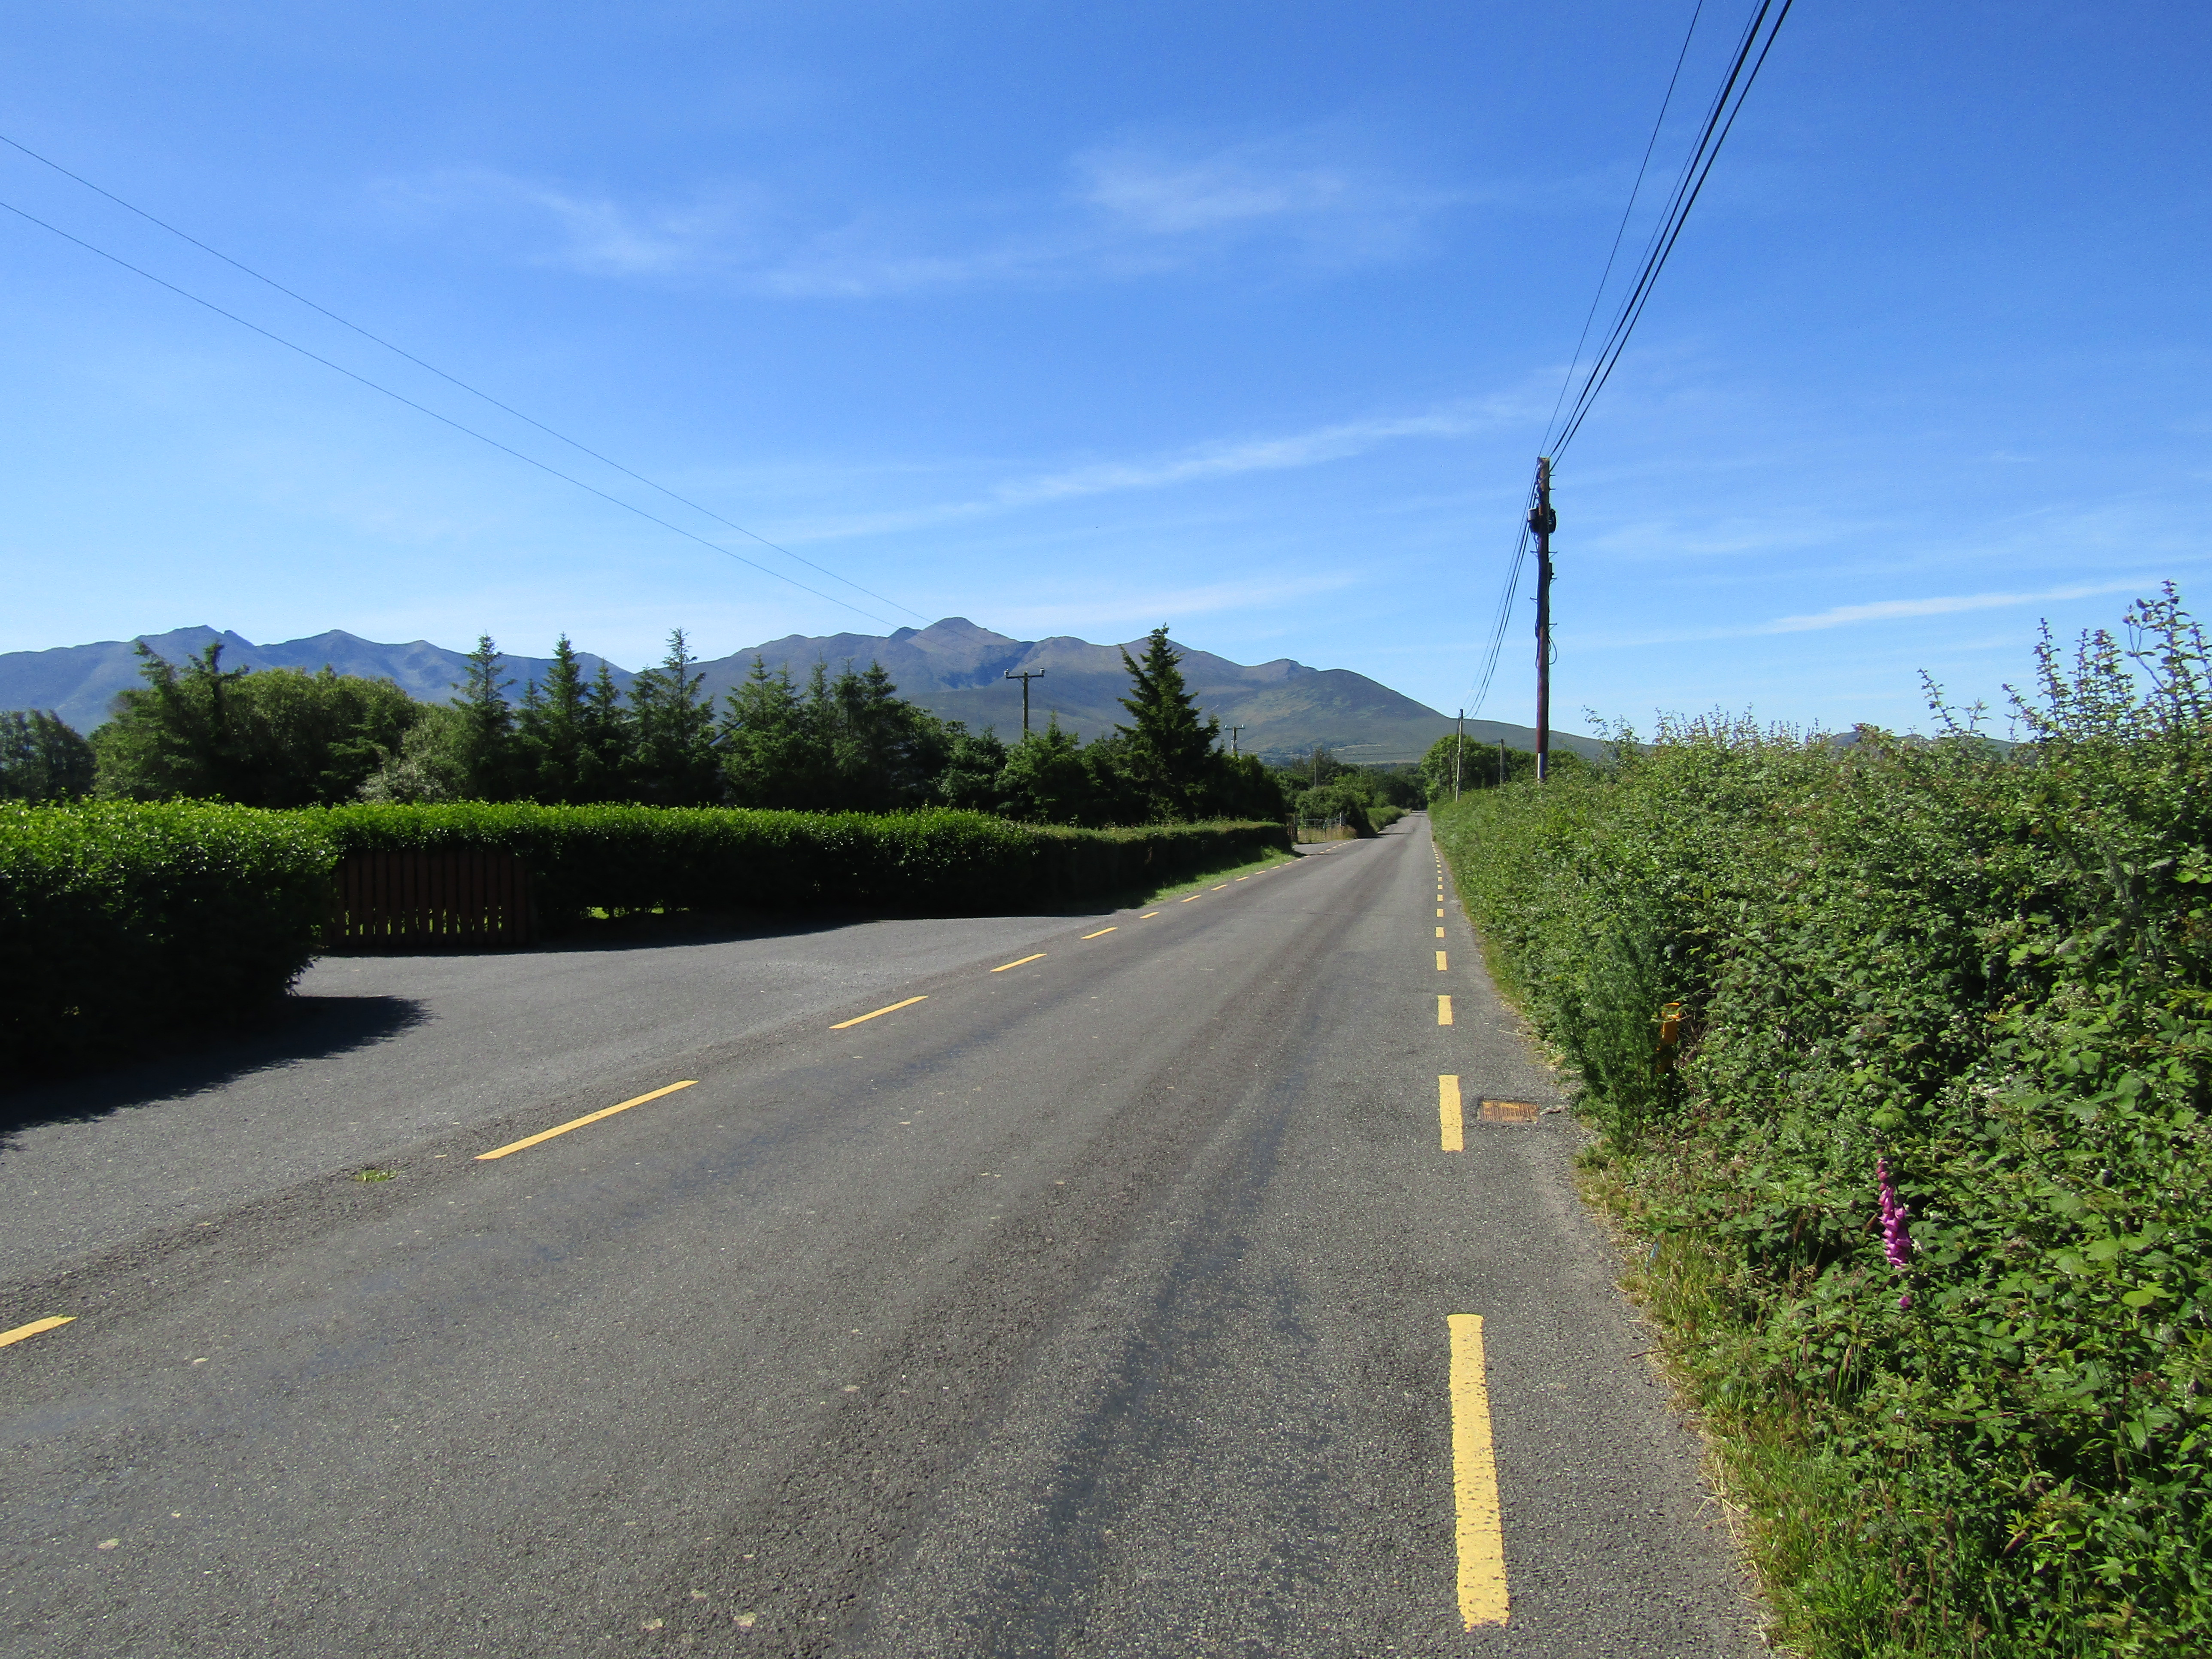 Road in Ireland with no centre line